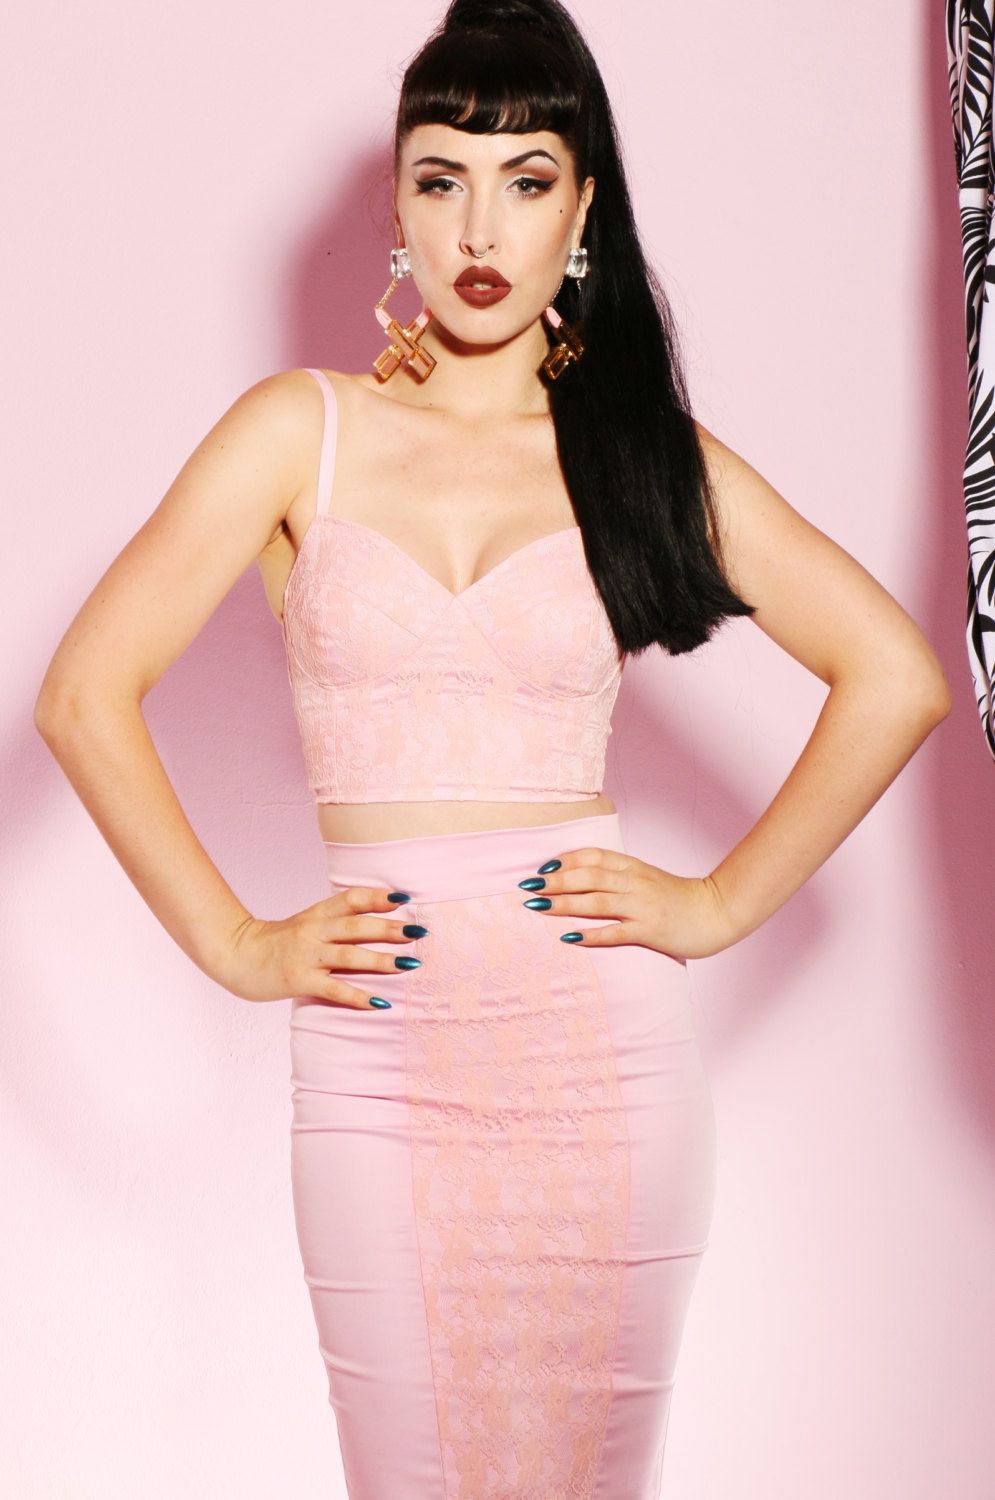 Pink lace crop top by holachicaclothing on Etsy https://www.etsy.com/listing/221432531/pink-lace-crop-top #pinup #Pinup #lpd #pink